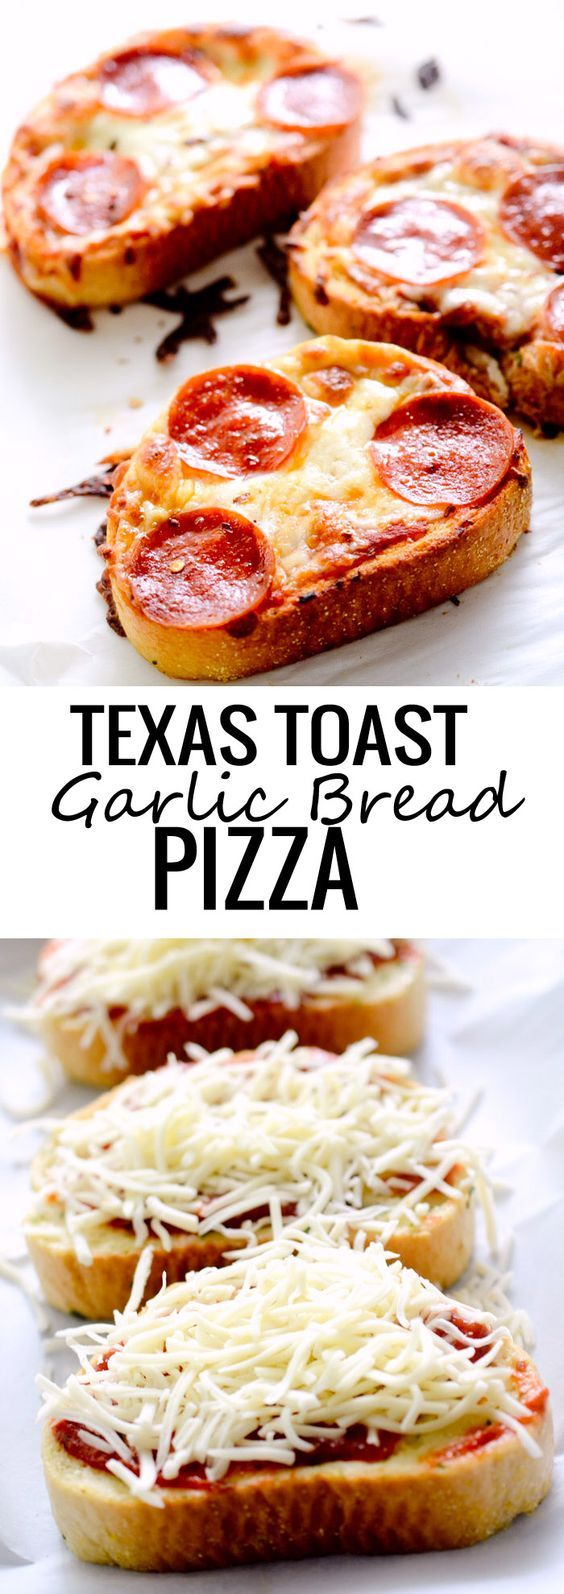 TEXAS TOAST GARLIC BREAD PIZZA - these were surprising my bland. I used chinky marinara and Brett didn't like it